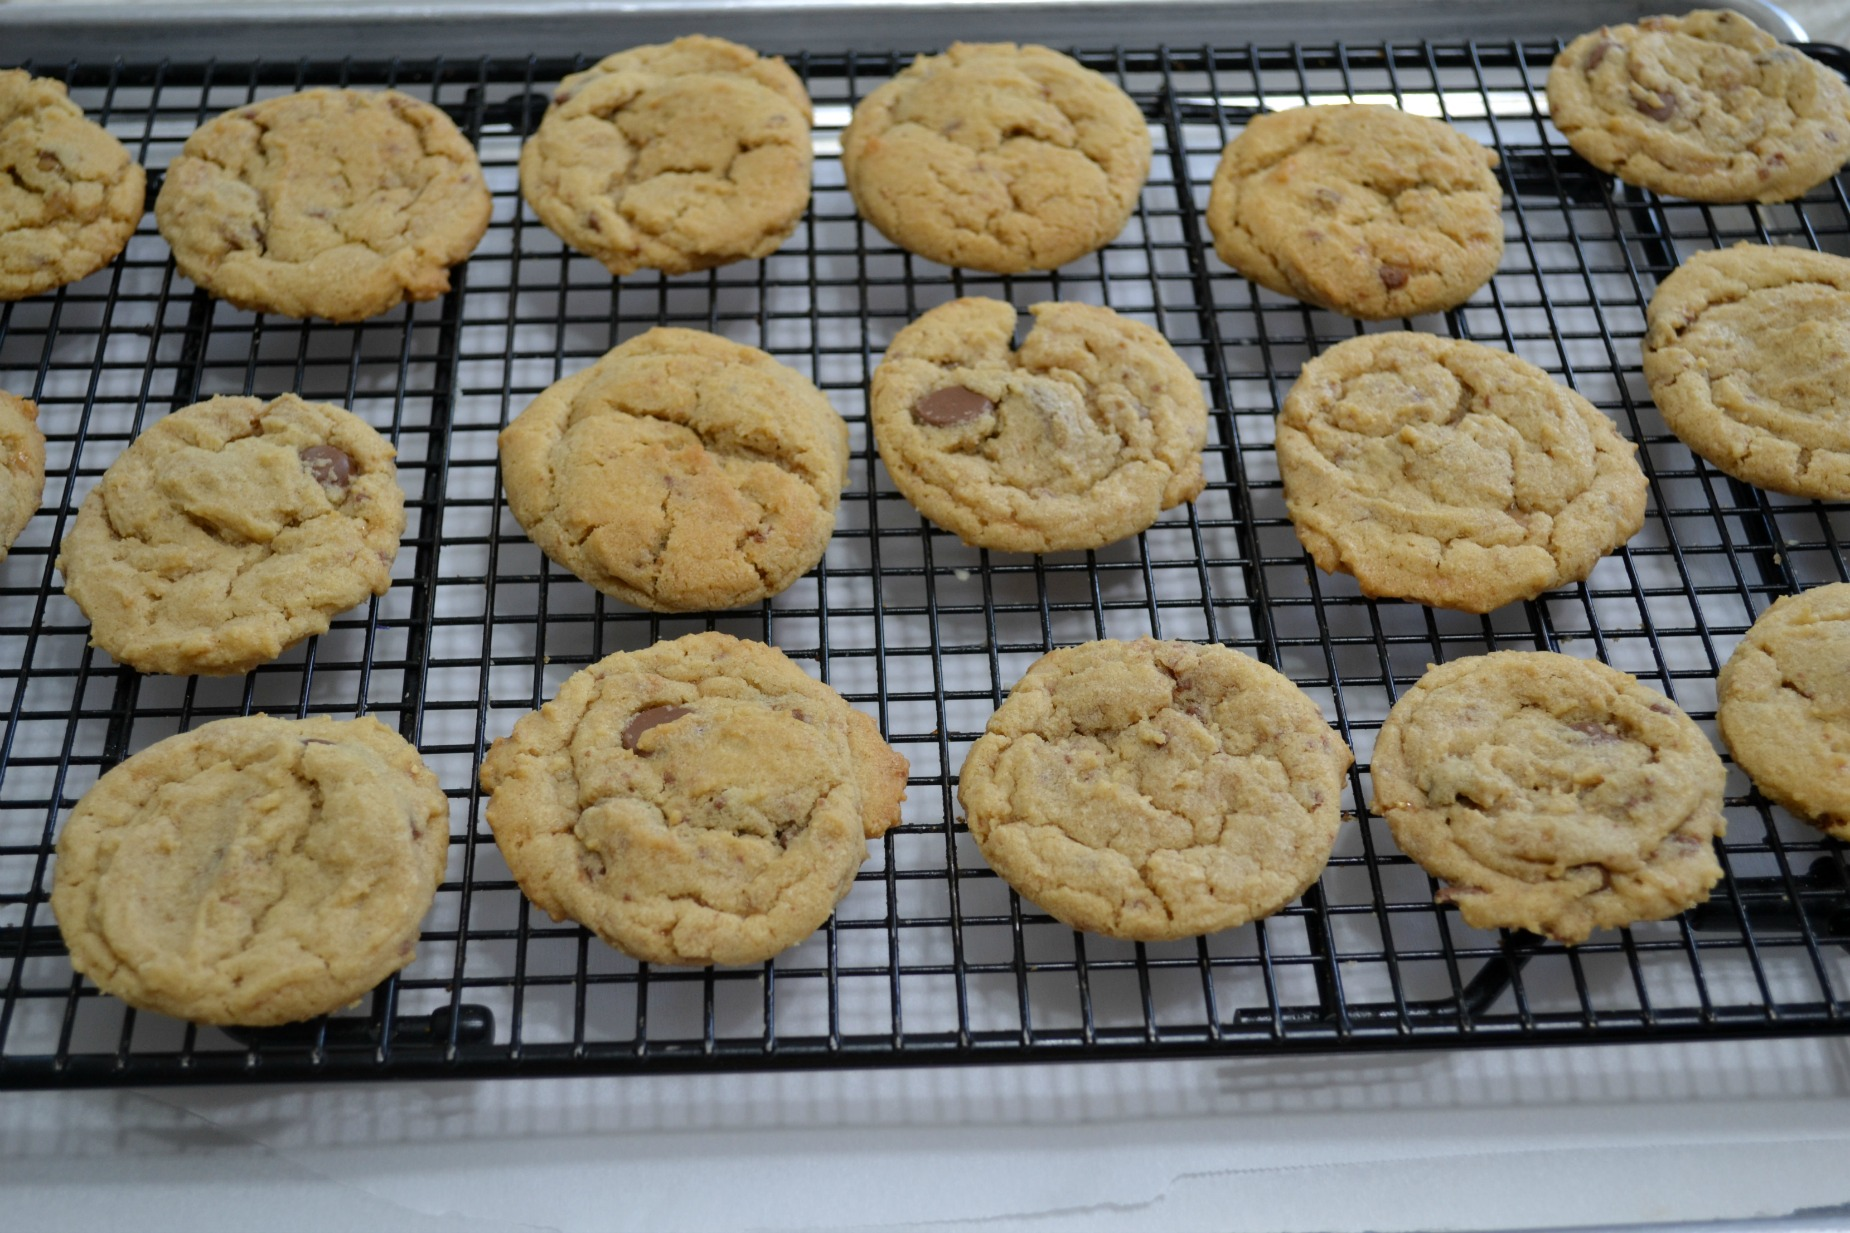 peant butter, toffee bits, choc chips, cookies, fall baking